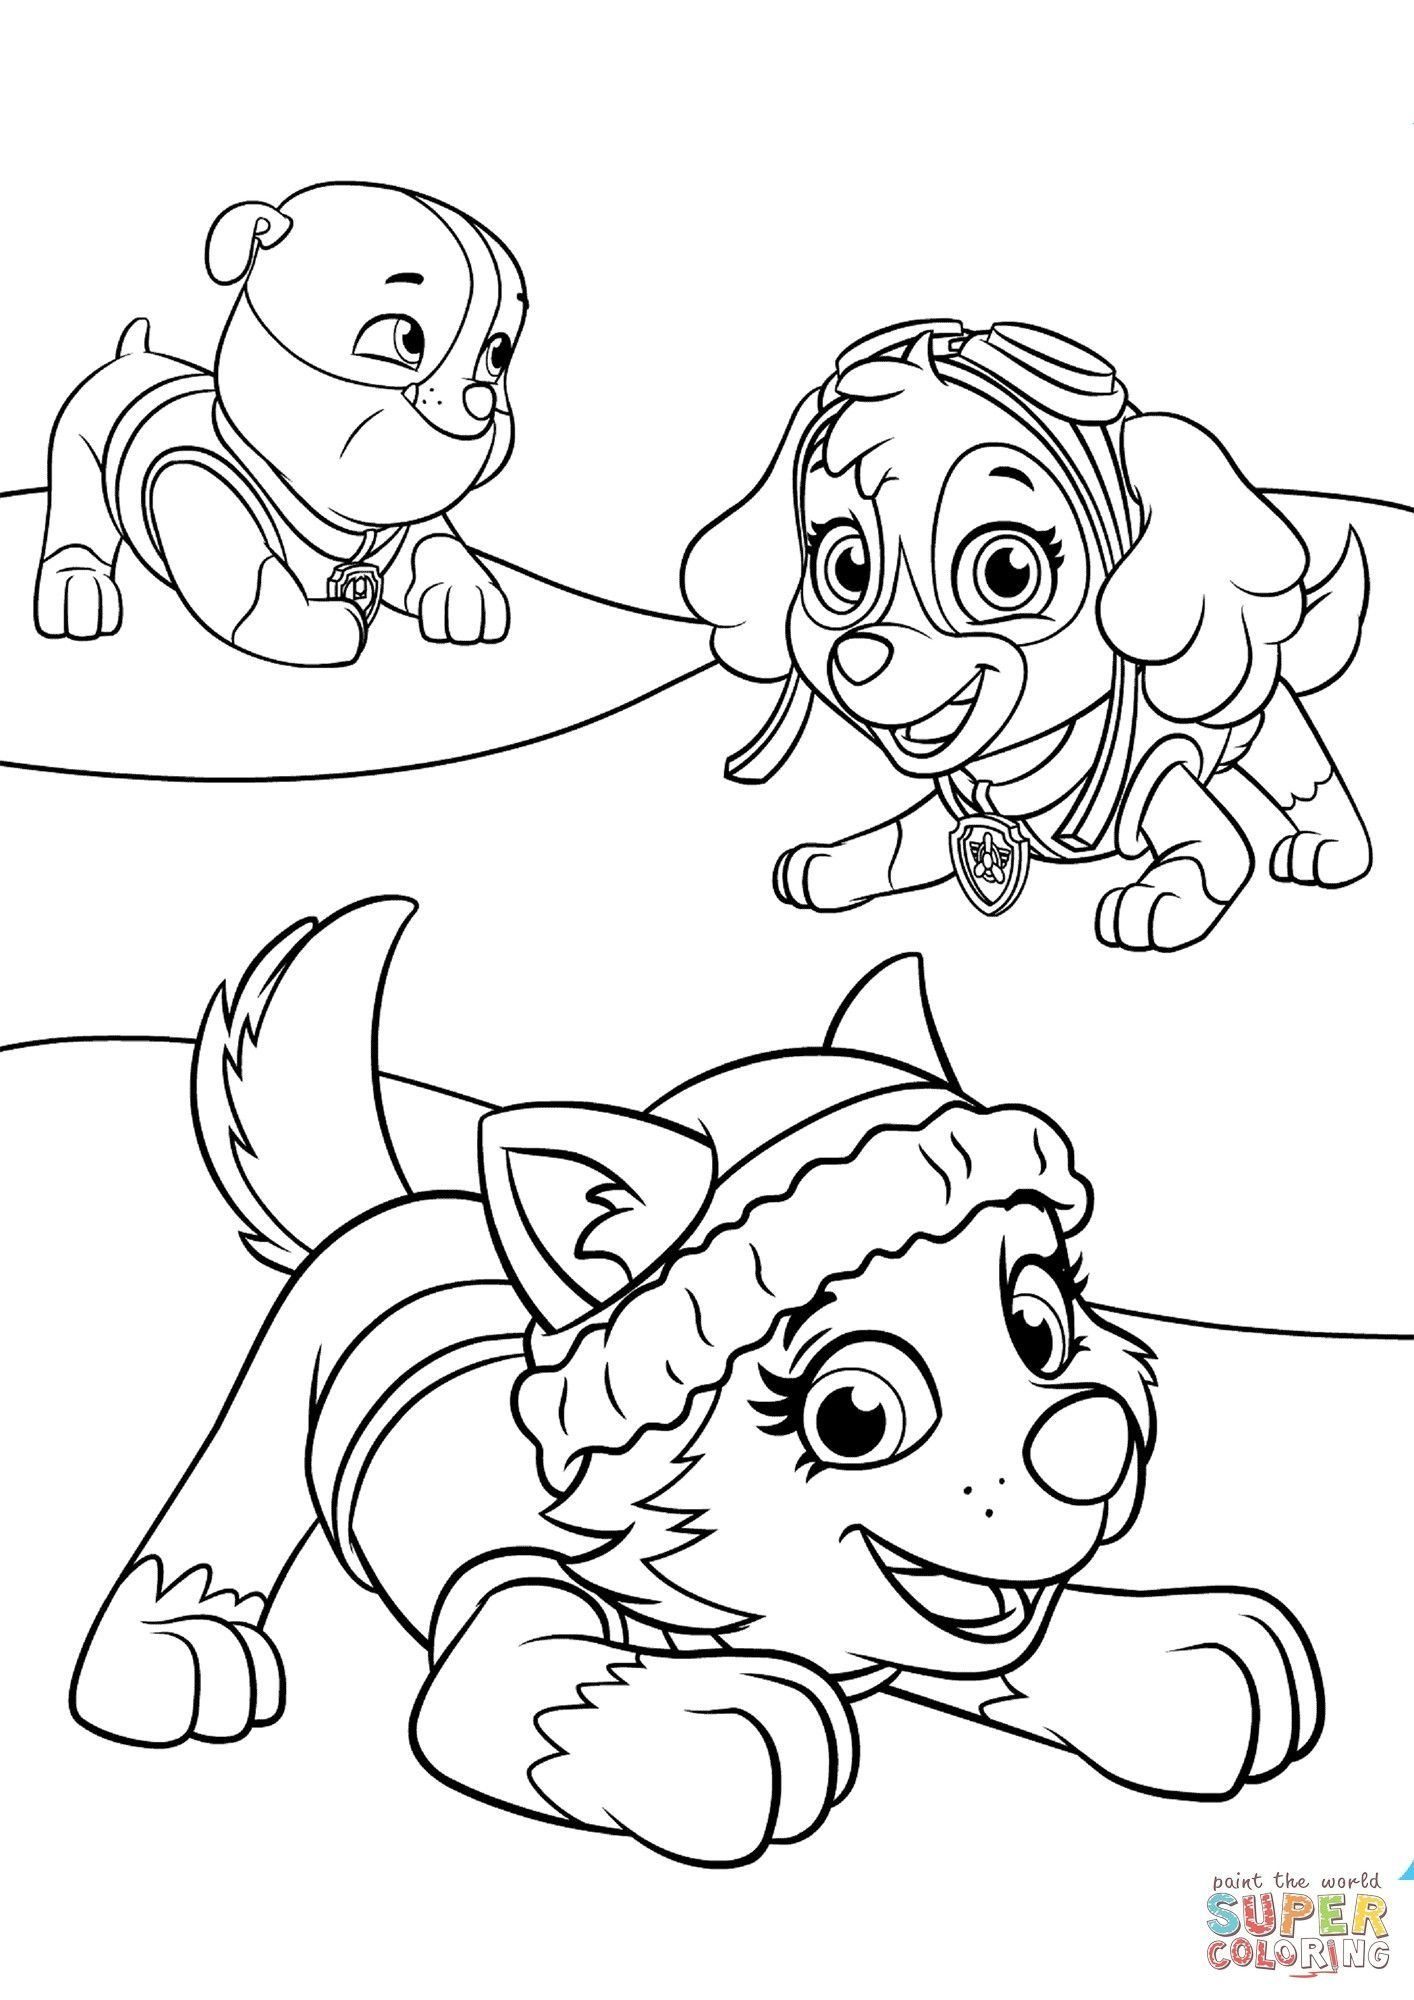 Free Download Paw Patrol Christmas Coloring Pages Di 2020